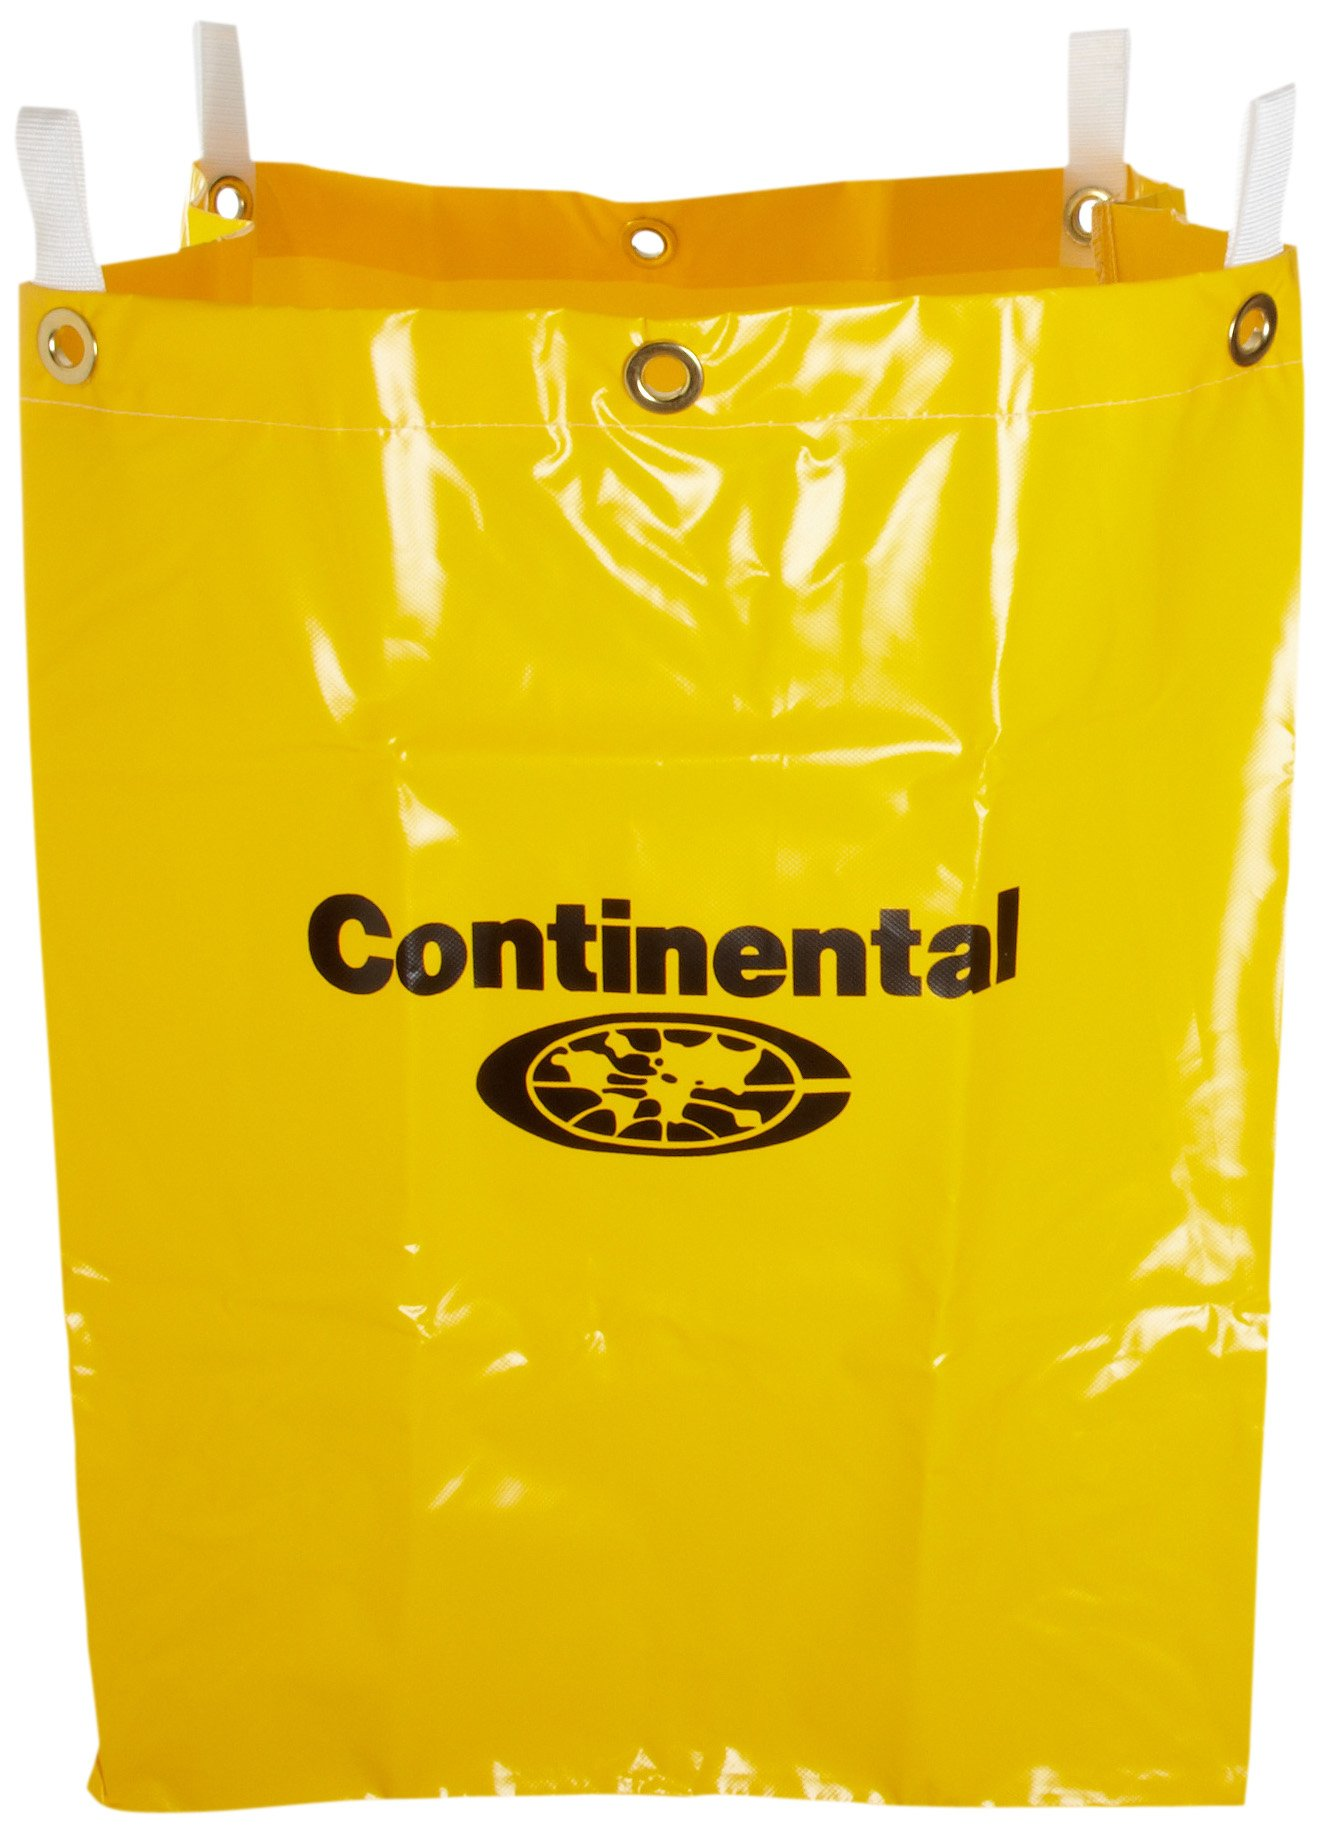 Continental 276 Yellow Vinyl Replacement Bag for 275 Cart by CONTINENTAL